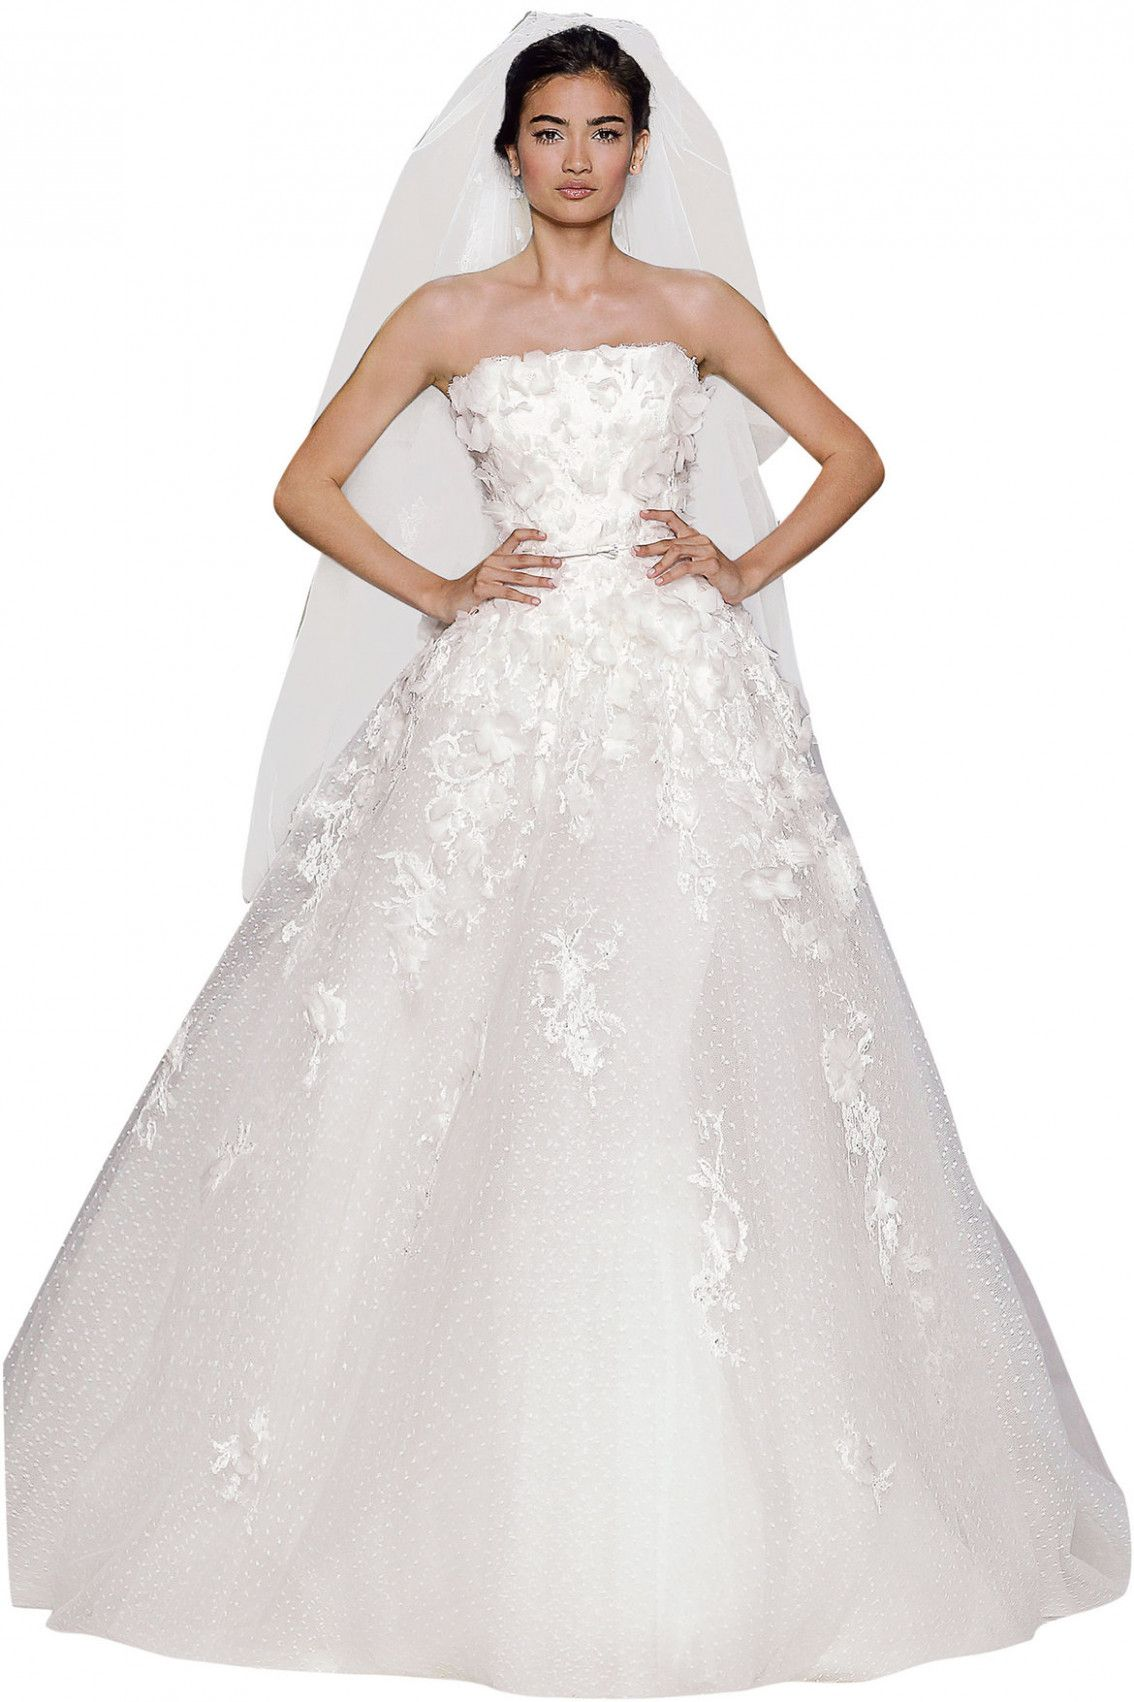 Wedding dress for your body  Best Wedding Dress for Your Body Type Page   wedding decorations